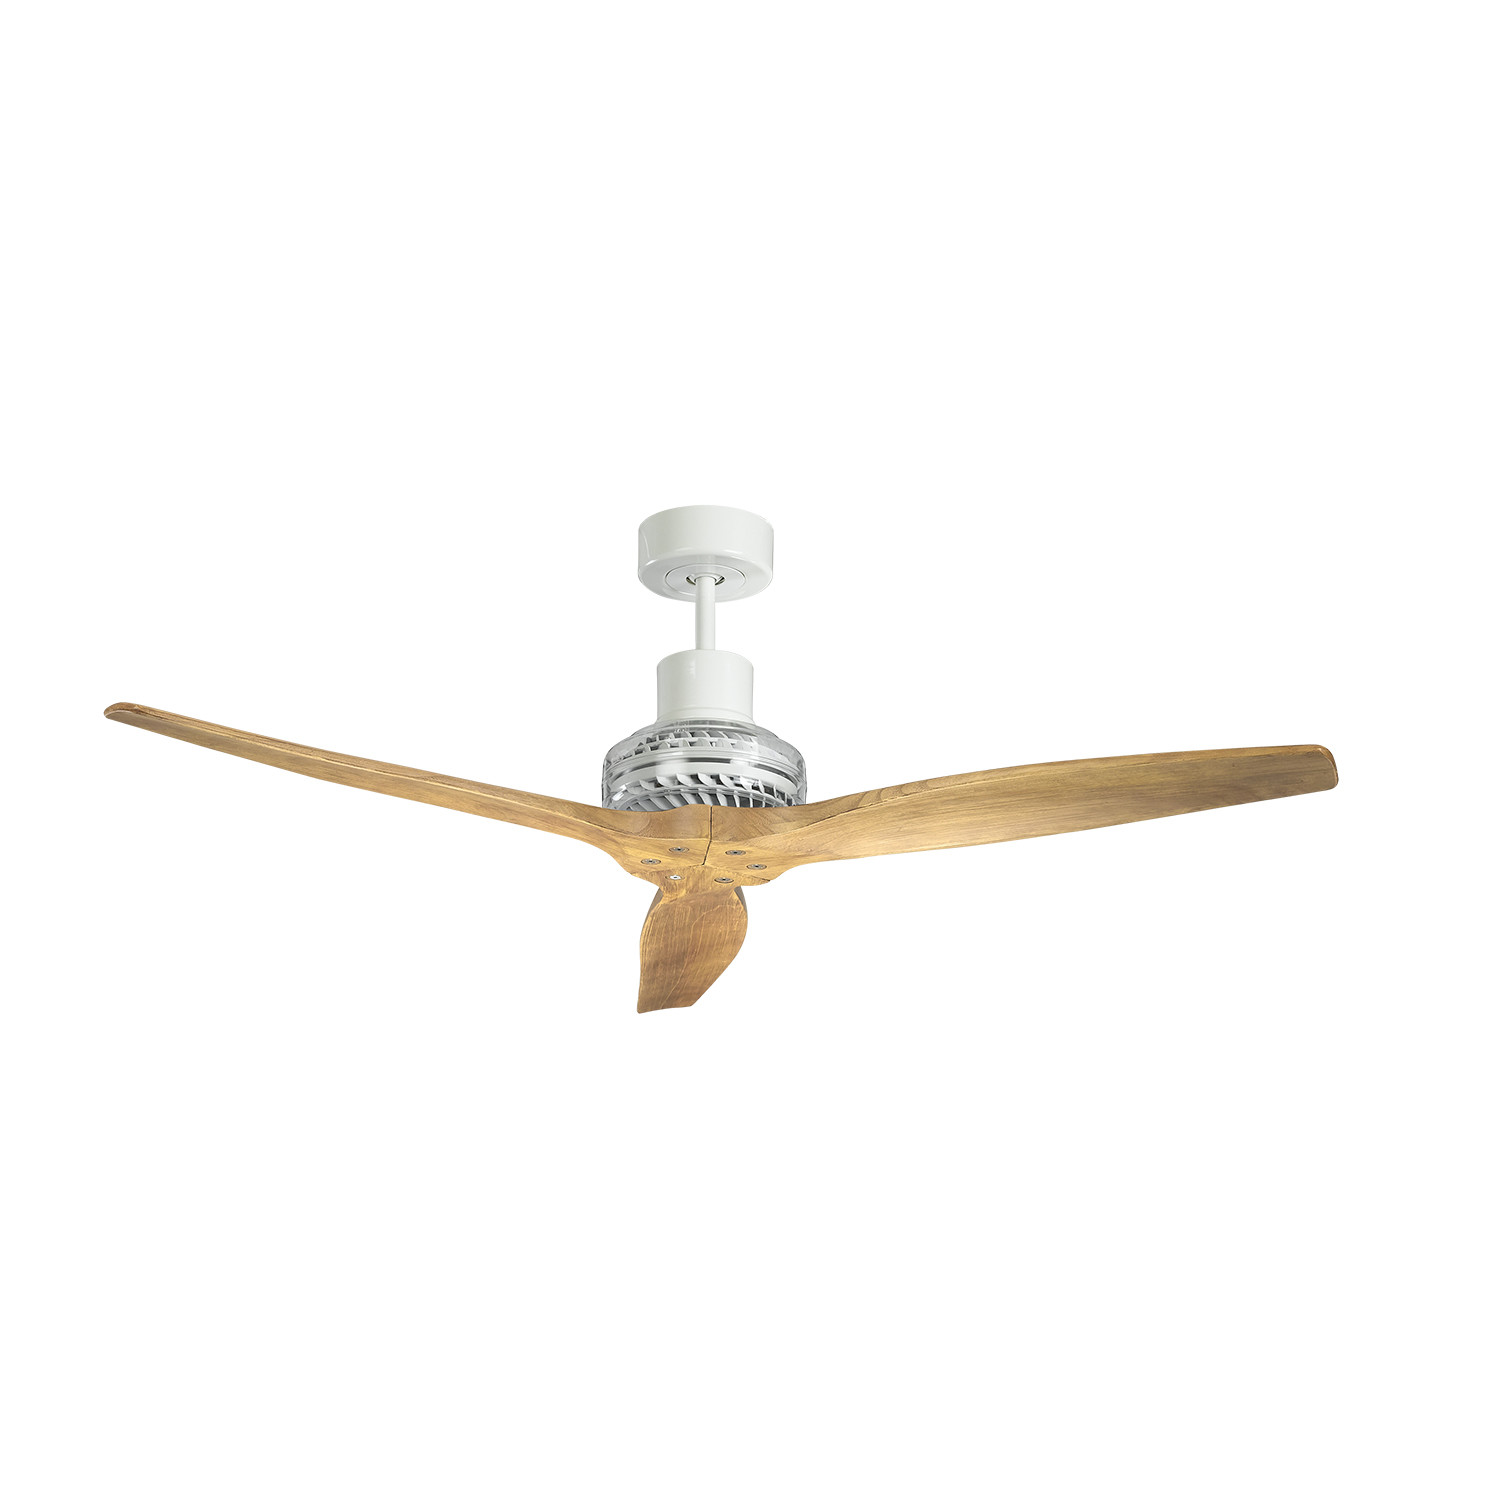 Propeller Blade Ceiling Fans : White star propeller ceiling fan motor graphite blade